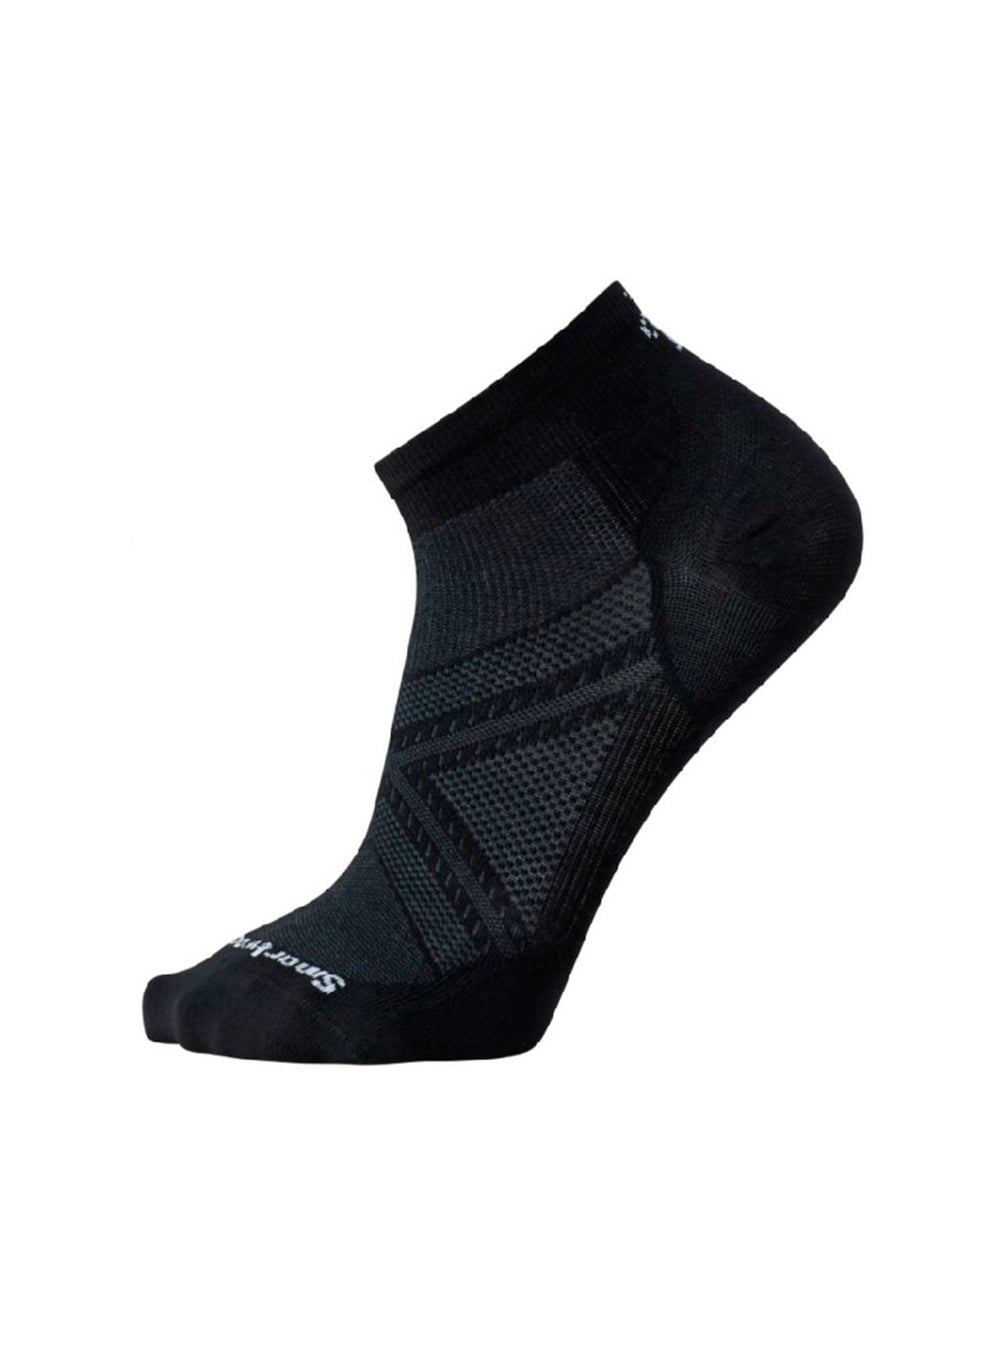 Smartwool PhD Run Ultra Light Low Cut Socks - Unisex